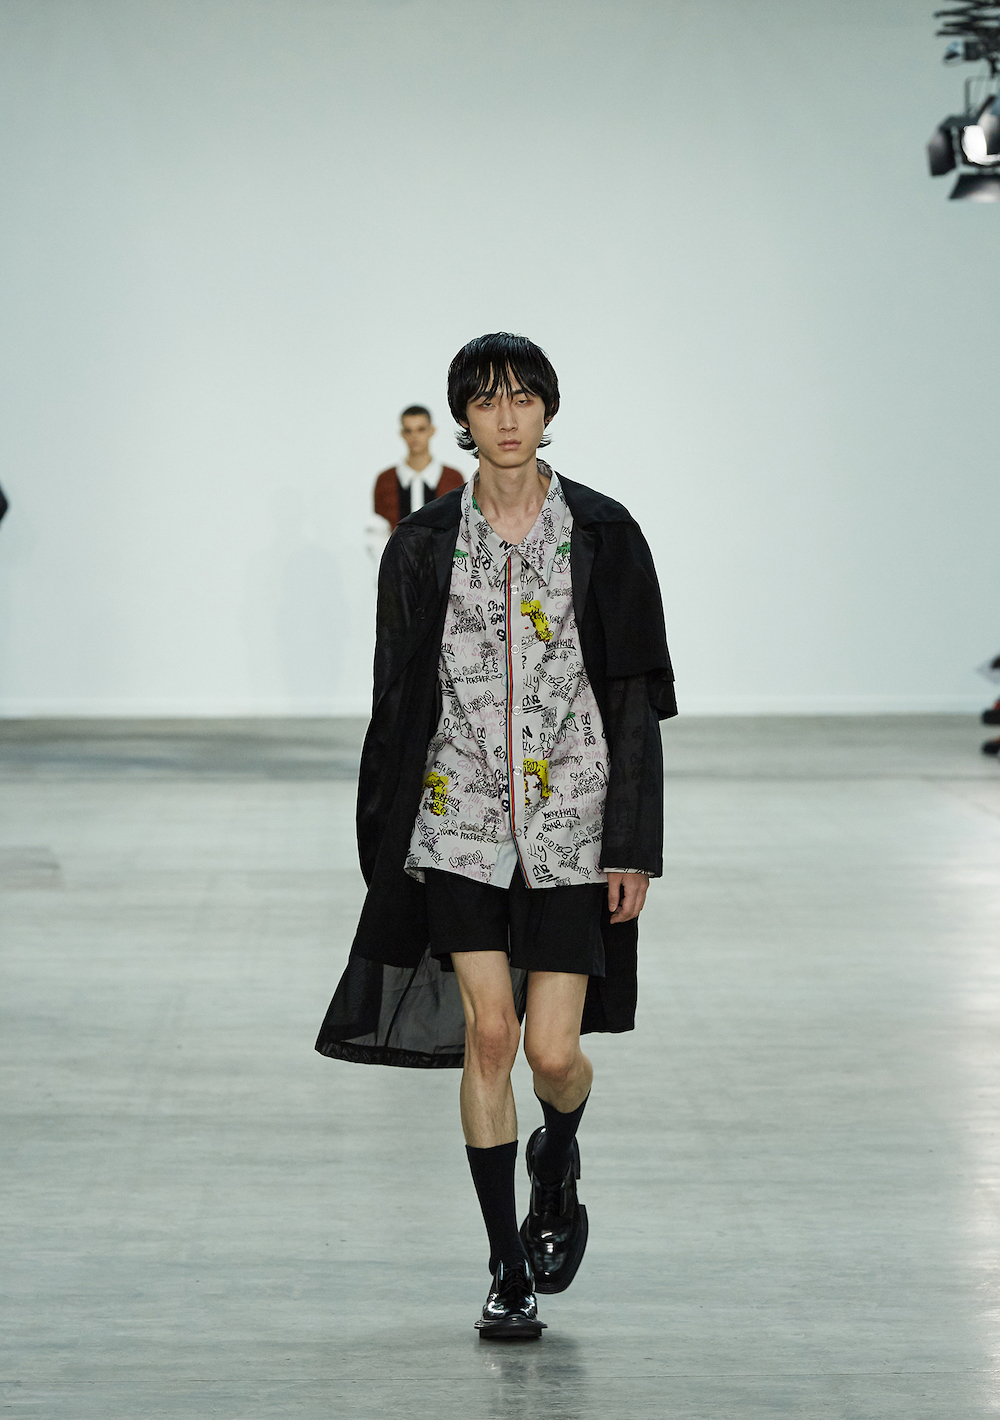 8on8 at London Fashion Week Men's, presented by GQ China